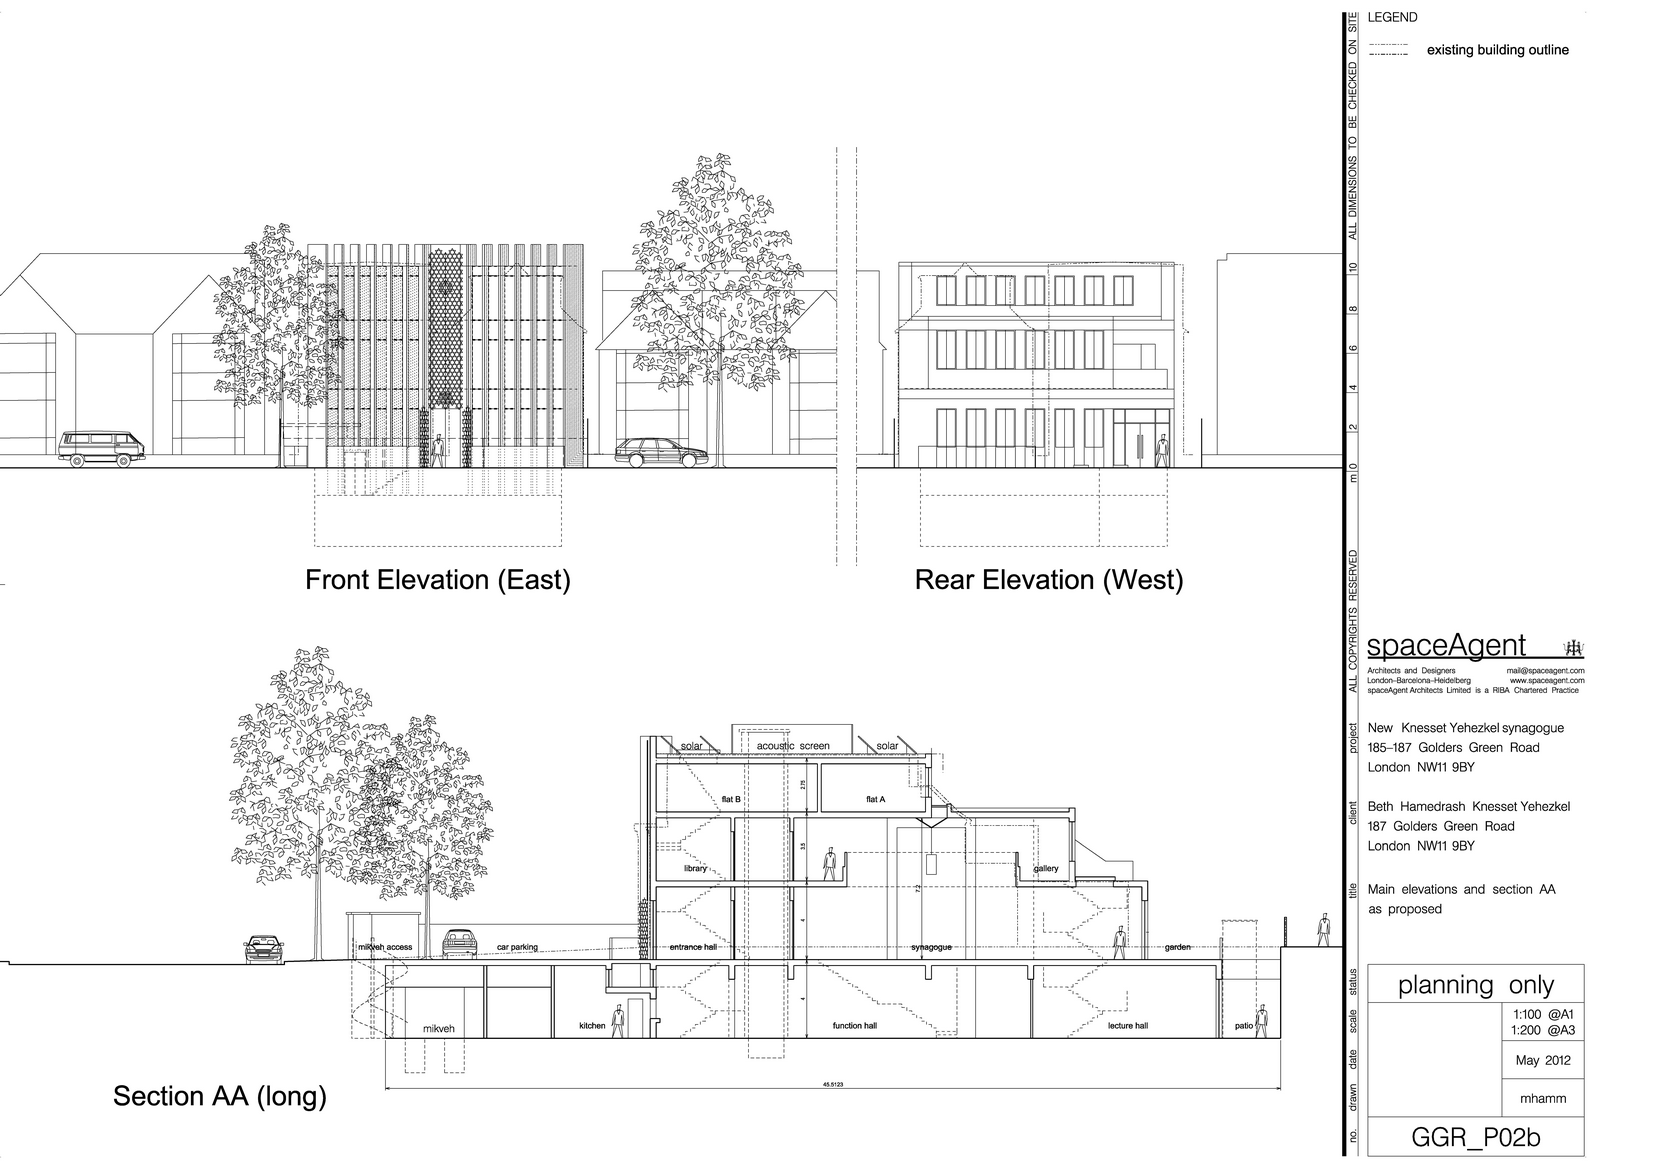 main elevations and section